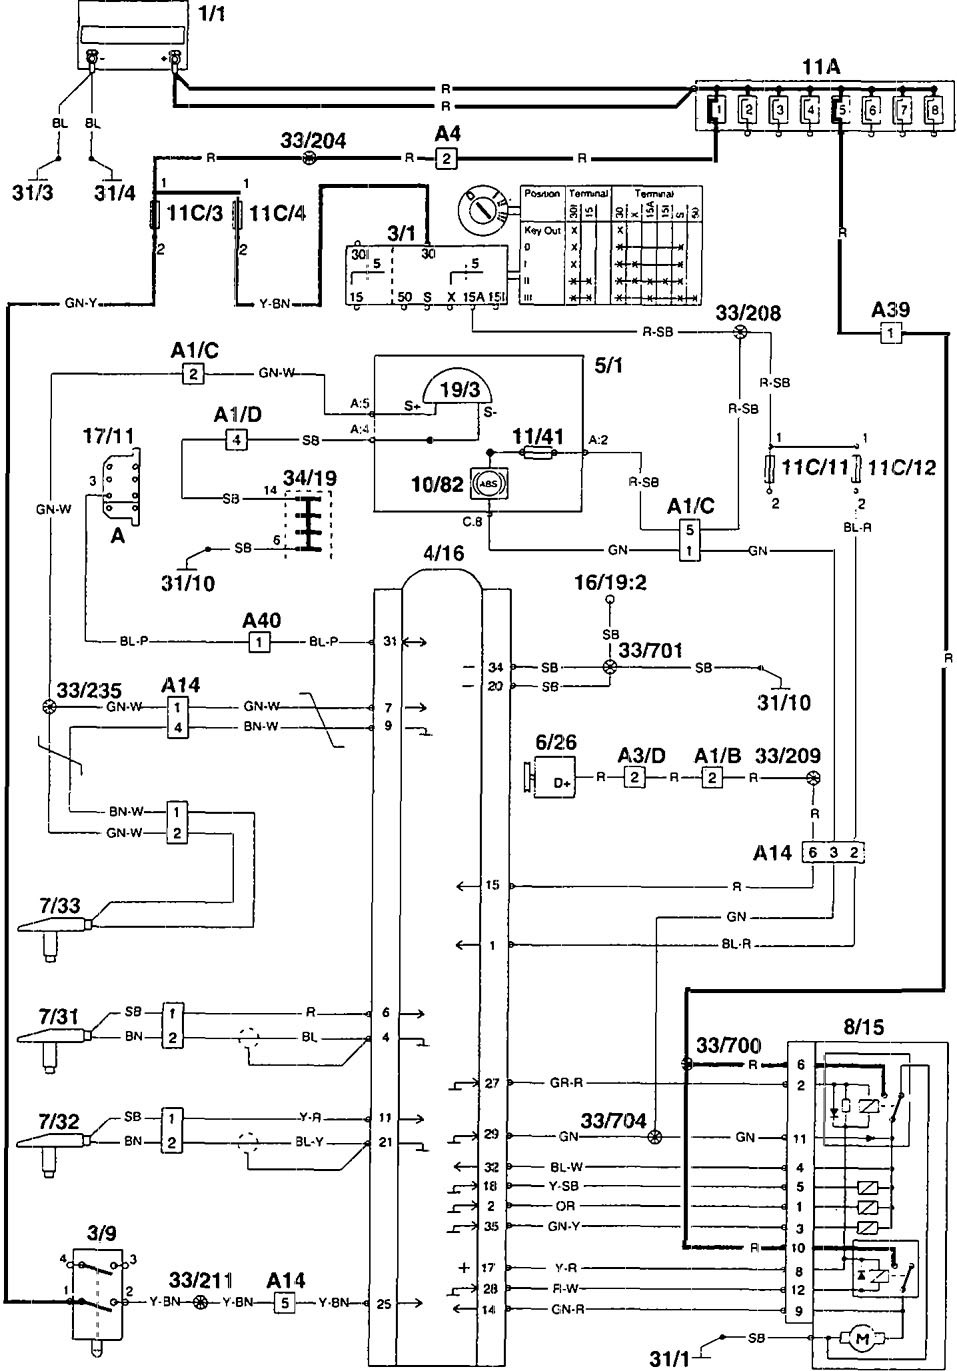 Wiring Diagram Volvo 960 : Volvo  wiring diagrams brake controls